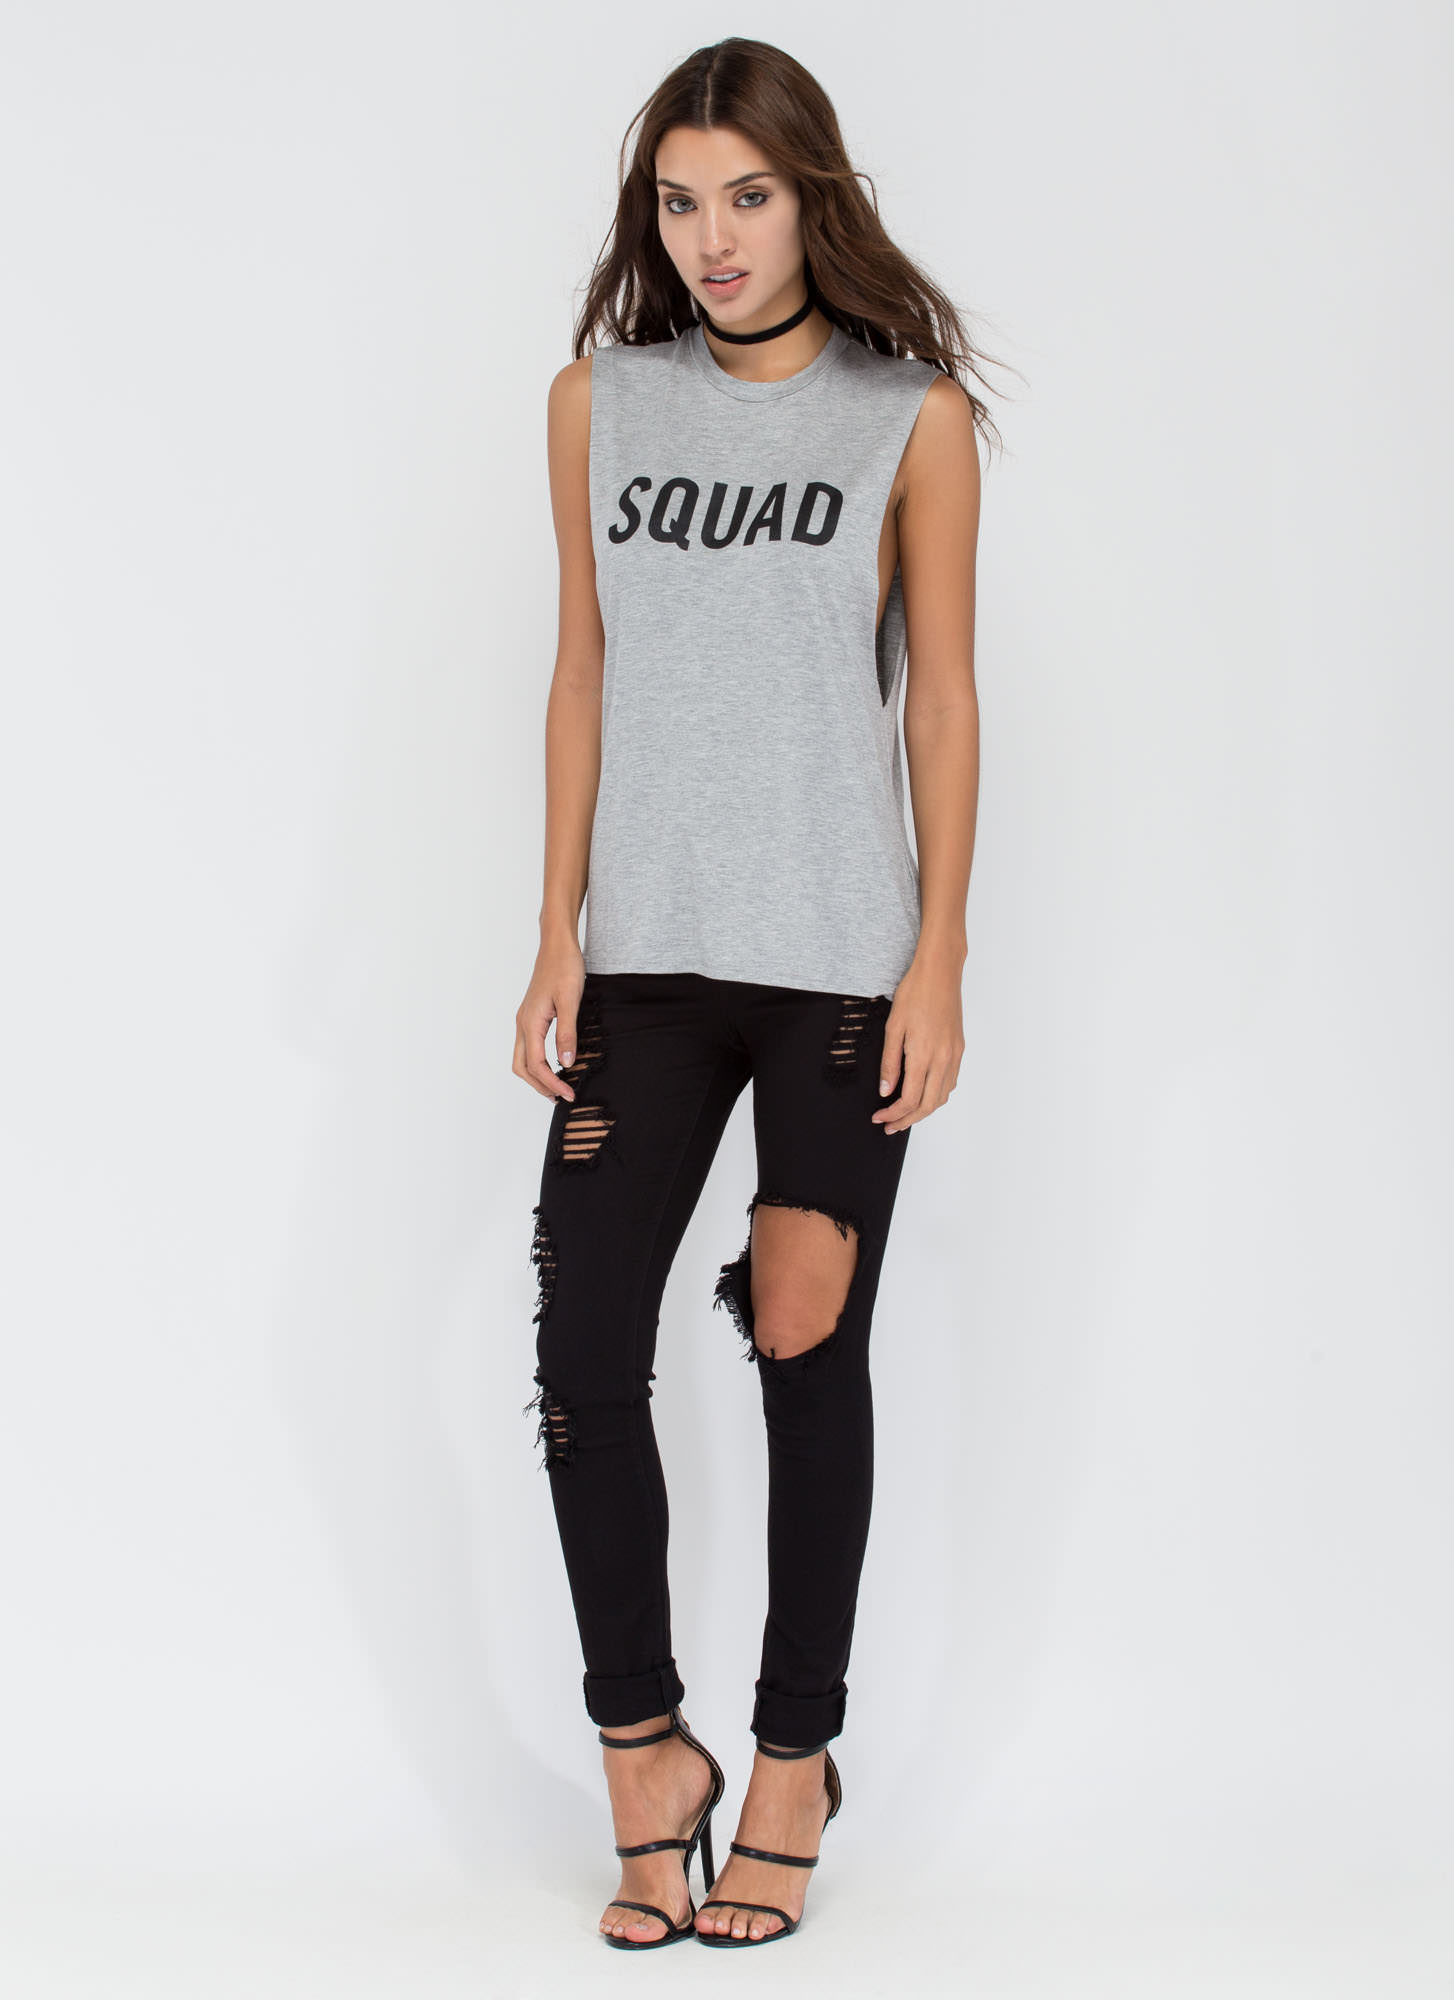 Squad Goals Muscle Tank HGREY